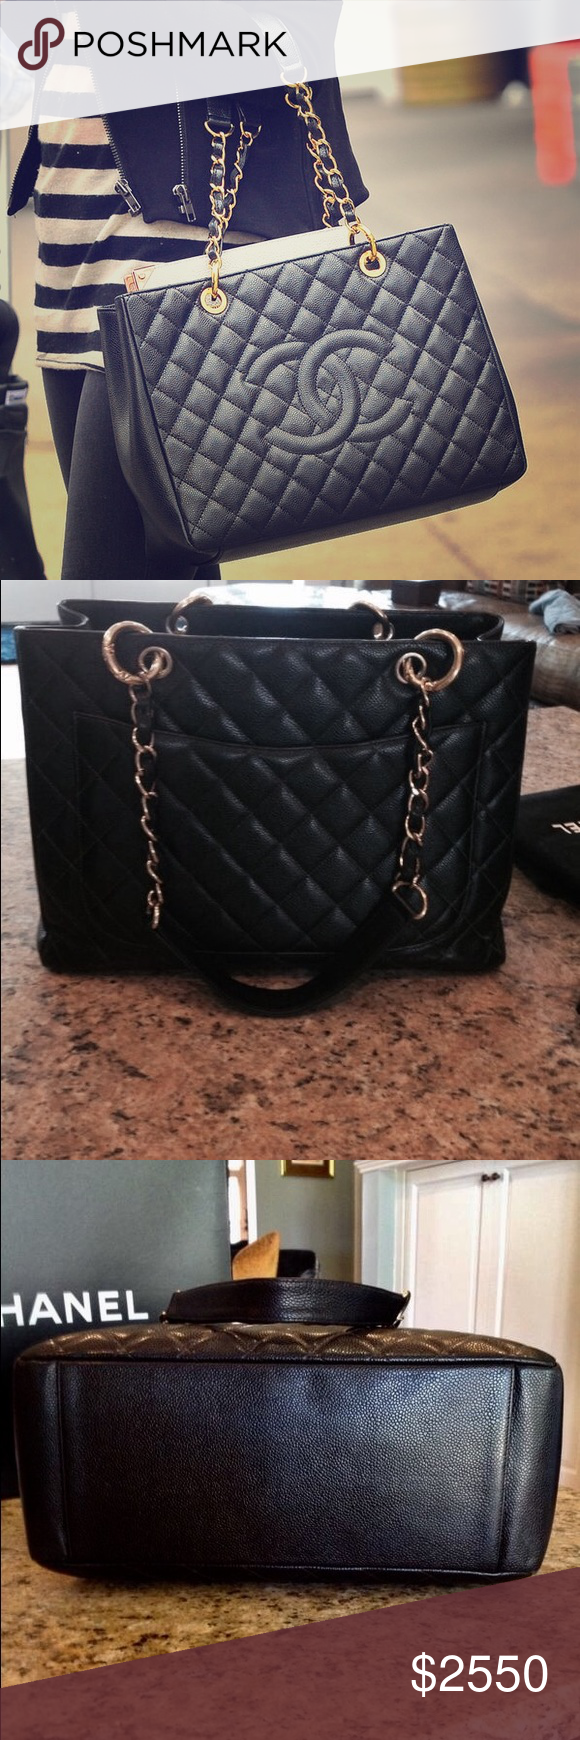 5a029bc2d12 CHANEL Grand Shopping Tote Gold and Caviar GST L This my Authentic CHANEL  GST L GHW